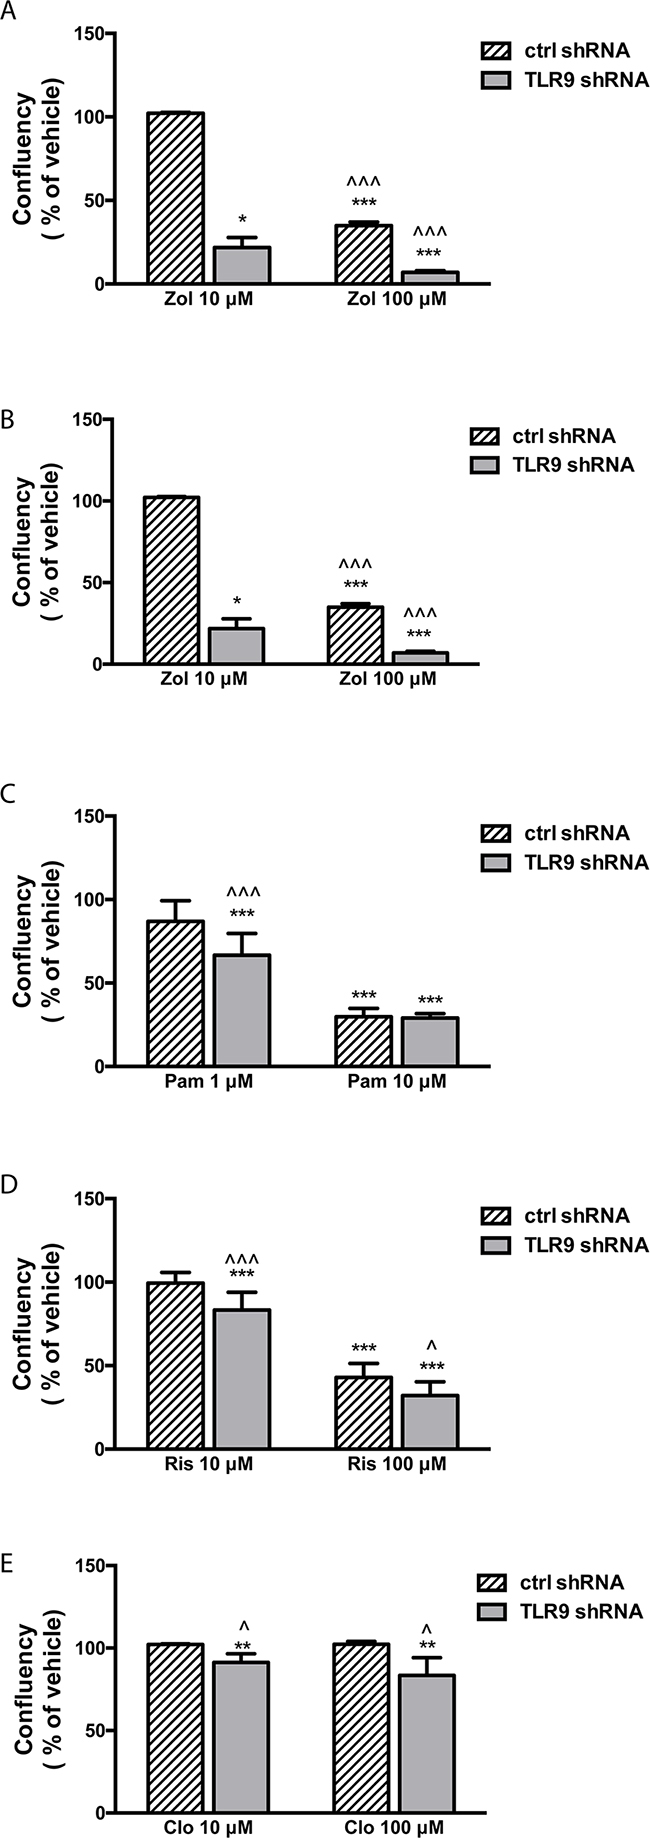 TLR9 shRNA MDA-MB-231 cells are more sensitive to the growth inhibitory effects of bisphosphonates than the corresponding control shRNA cells.